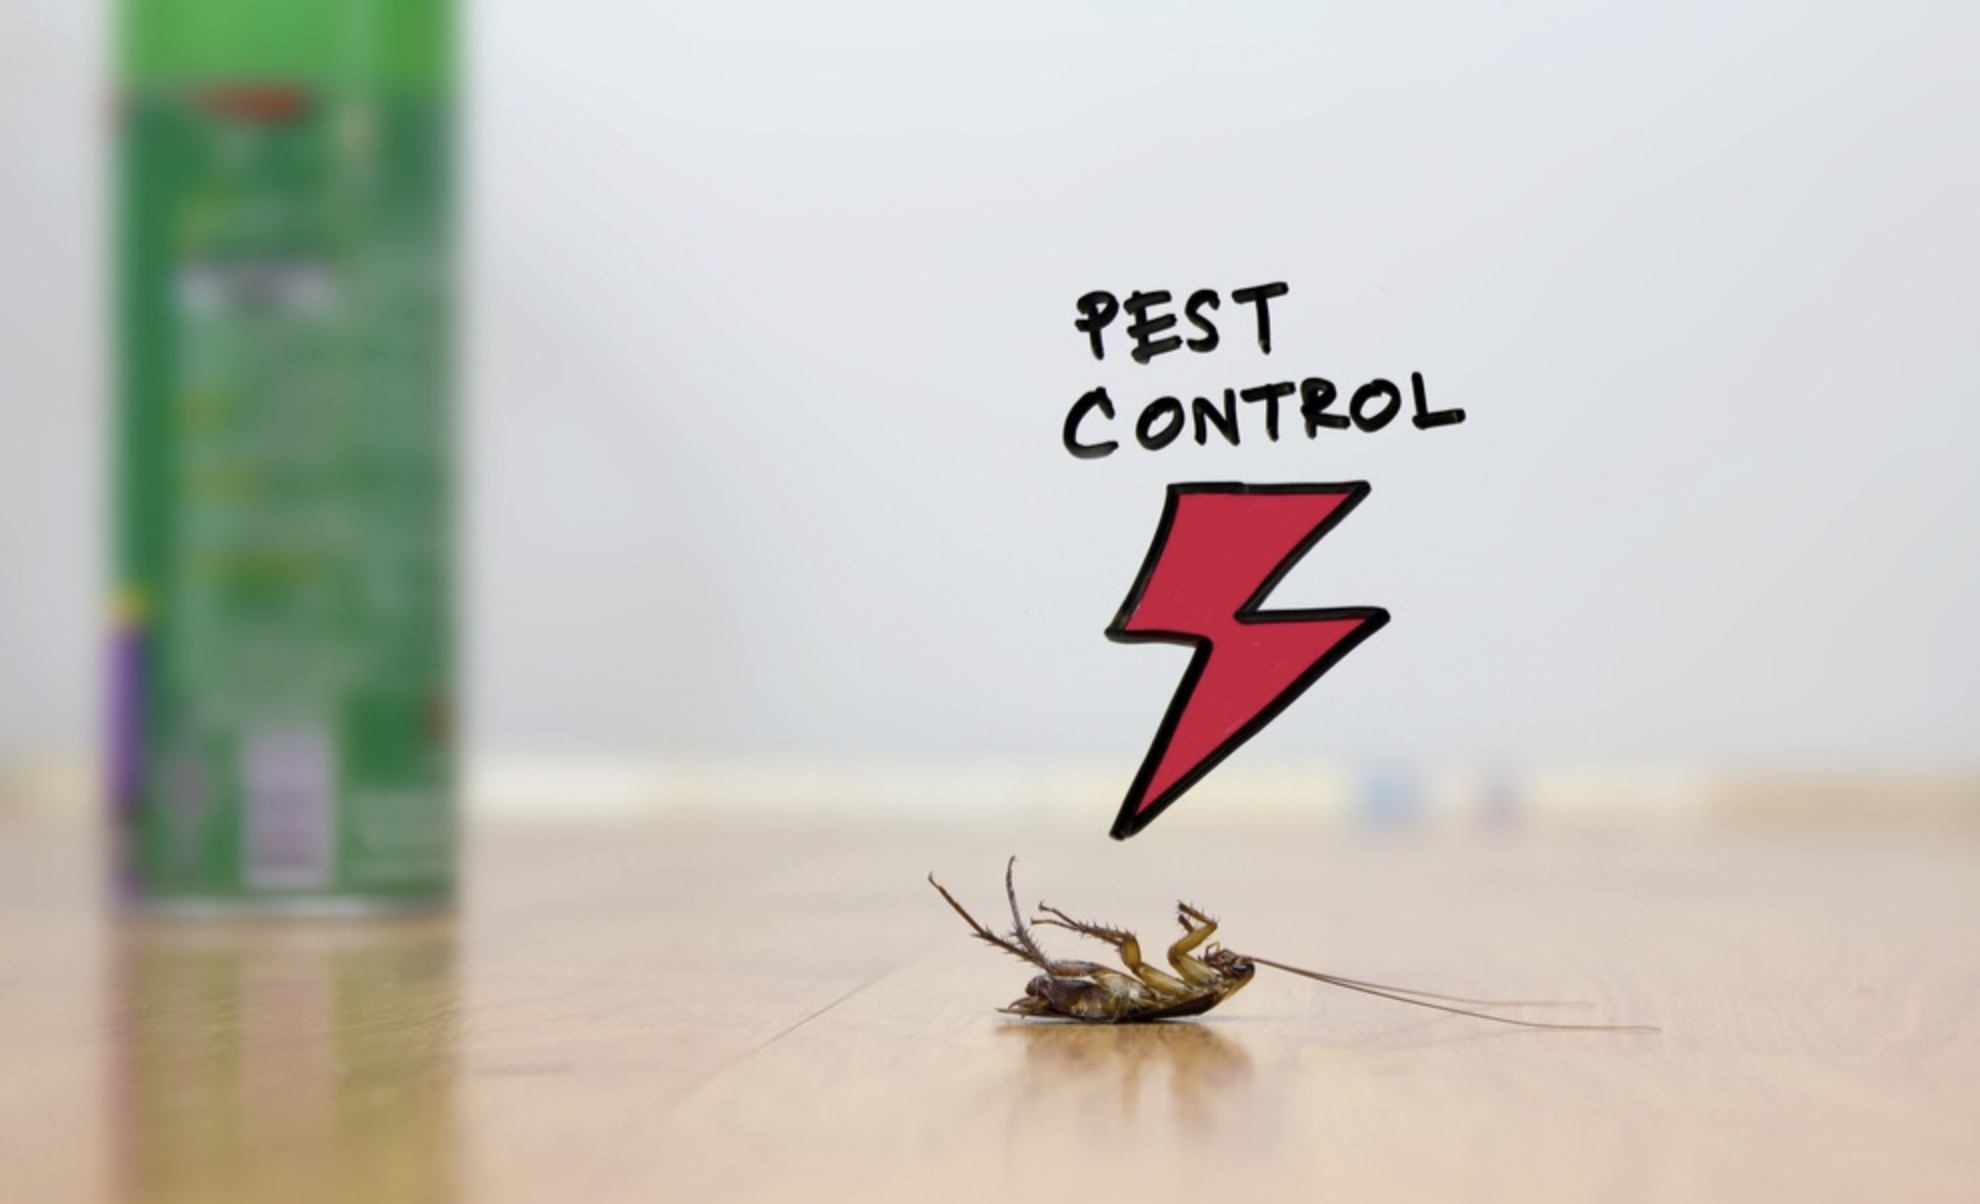 4 tips to prevent pest infestation in your kitchen